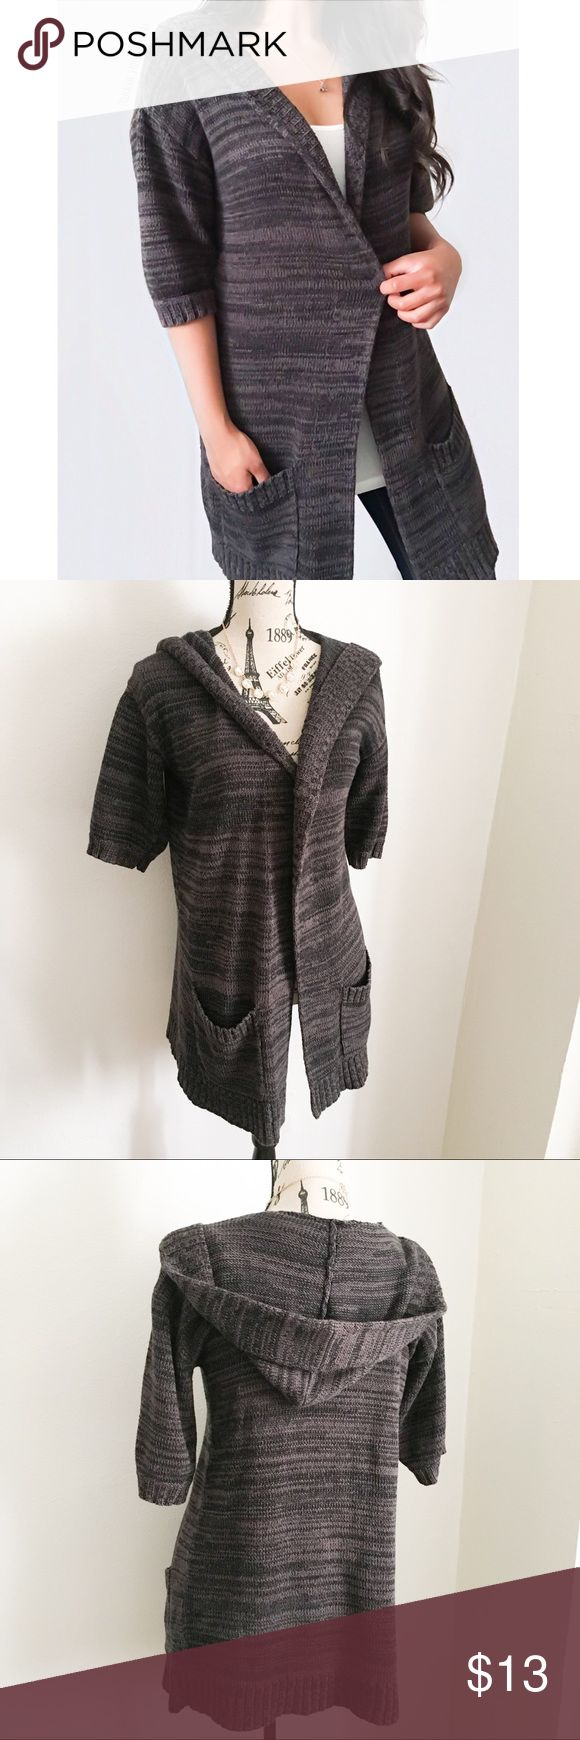 """Charcoal + Black Long Hooded Cardigan ✦   ✦{I am not a professional photographer, actual color of item may vary ➾slightly from pics}  ❥chest:21"""" ❥waist:20"""" ❥length:32"""" ❥sleeves:11.5"""" ➳material/care:cotton+ acrylic/machine wash  ➳fit:true w/a longer style  ➳condition:pre-loved no major flaws like rips/stains  ✦20% off bundles of 3/more items ✦No Trades  ✦NO HOLDS ✦No transactions outside Poshmark  ✦No lowball offers/sales are final New York & Company Sweaters Cardigans"""